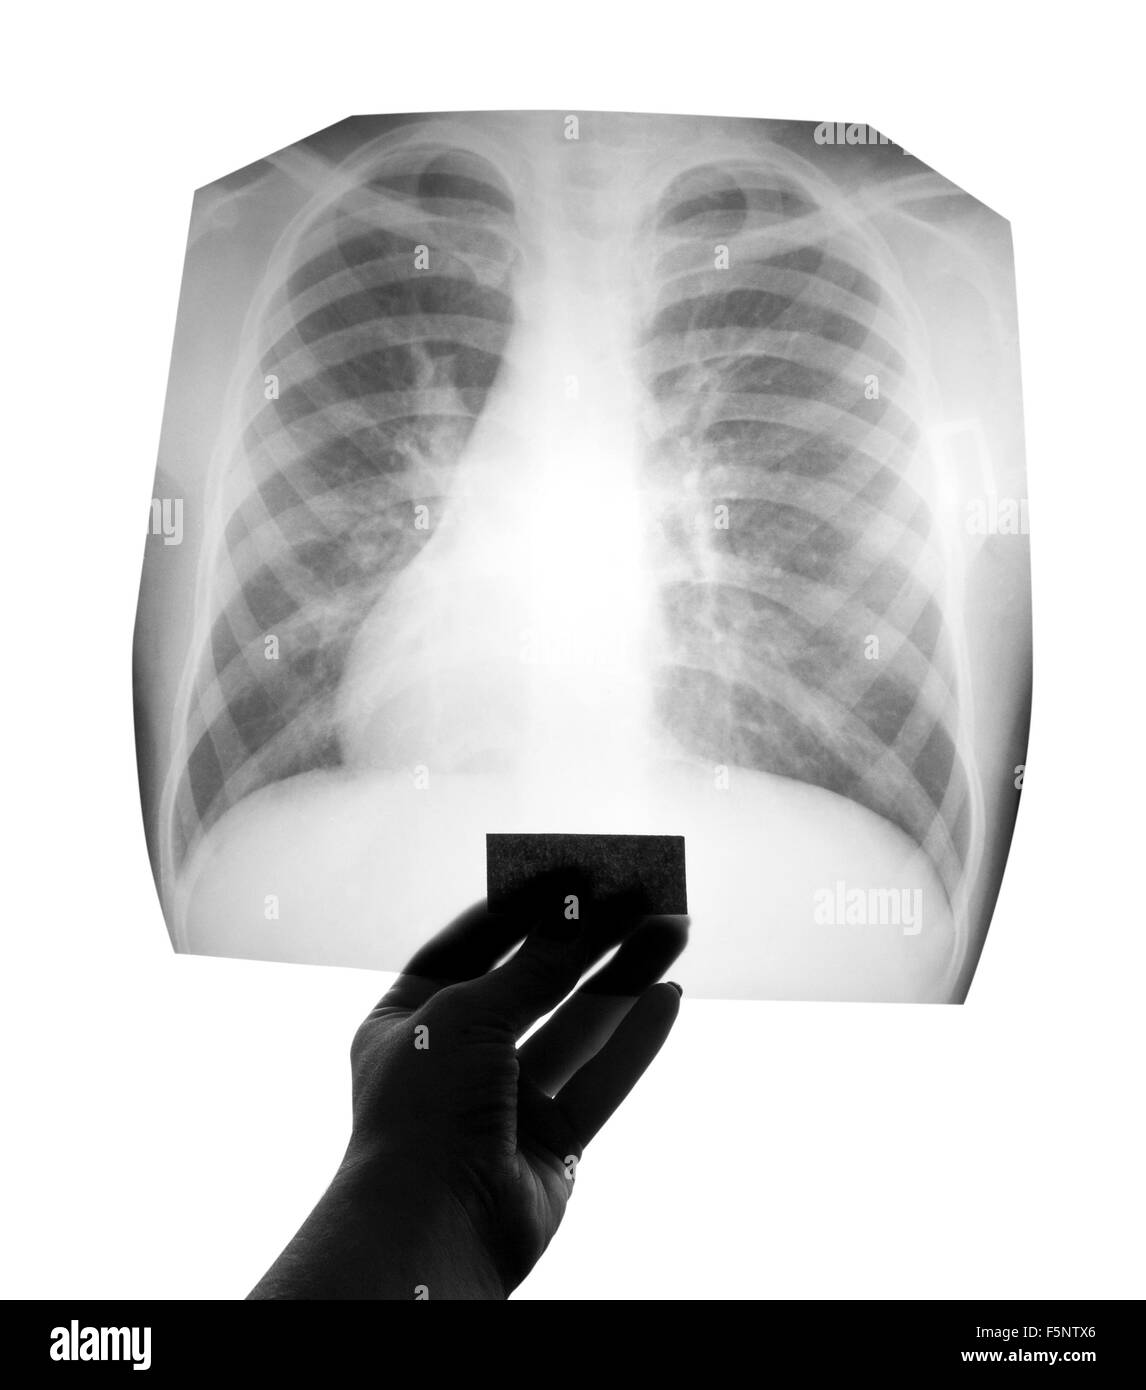 Chest X-ray image in hand - Stock Image